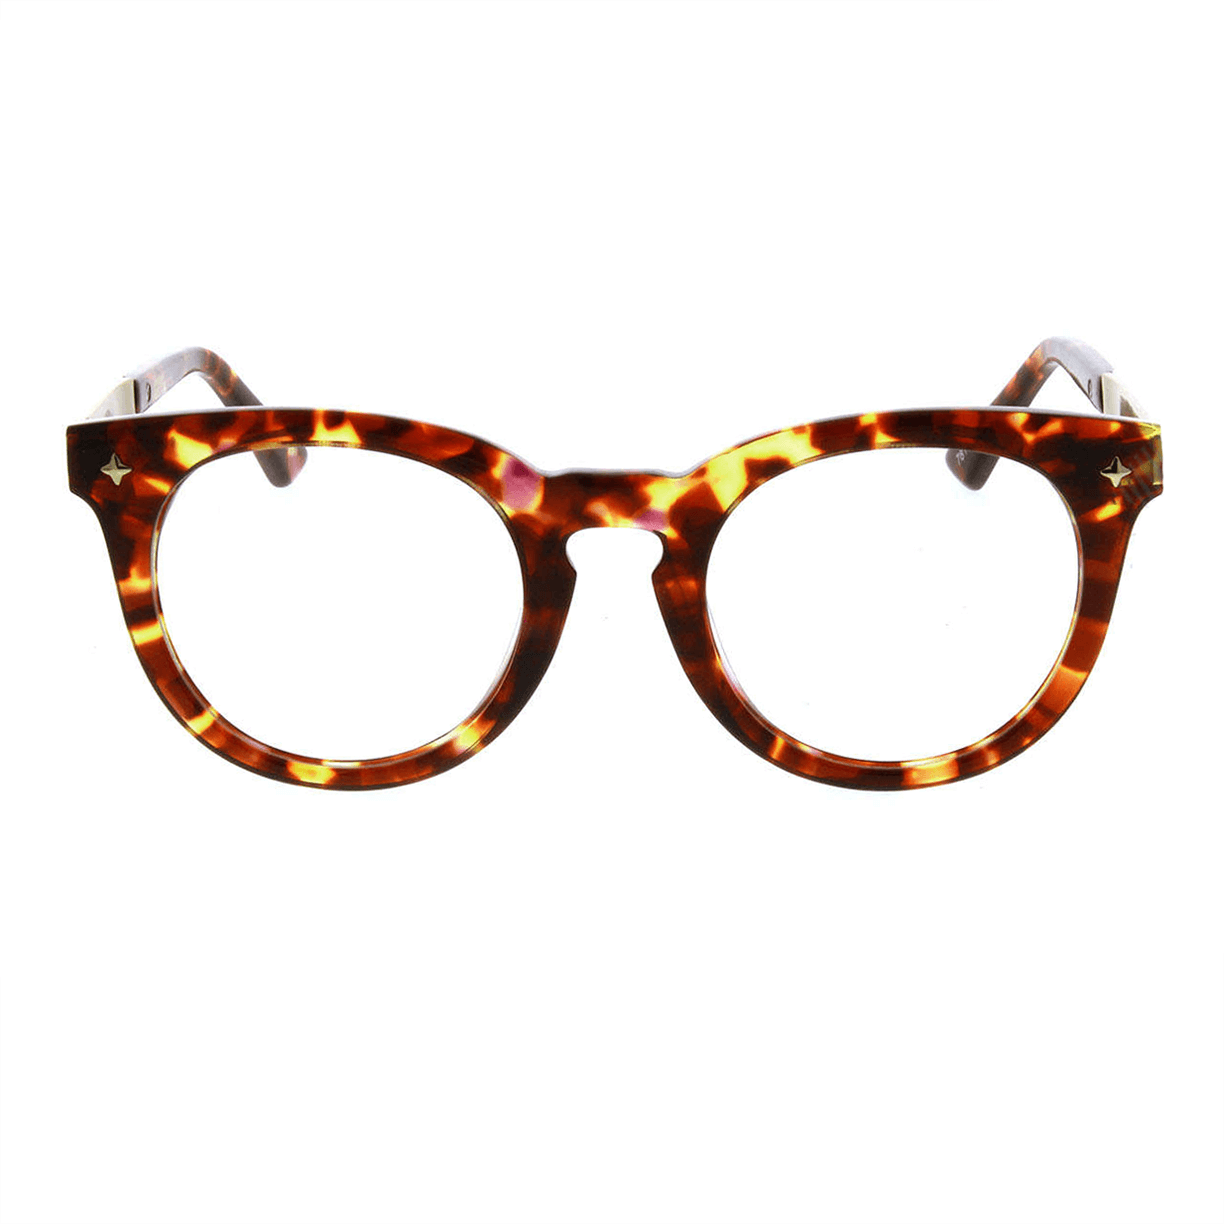 Glasses Frame Styles 2015 : Eyewear Trends for the 2016 Spring/Summer Season